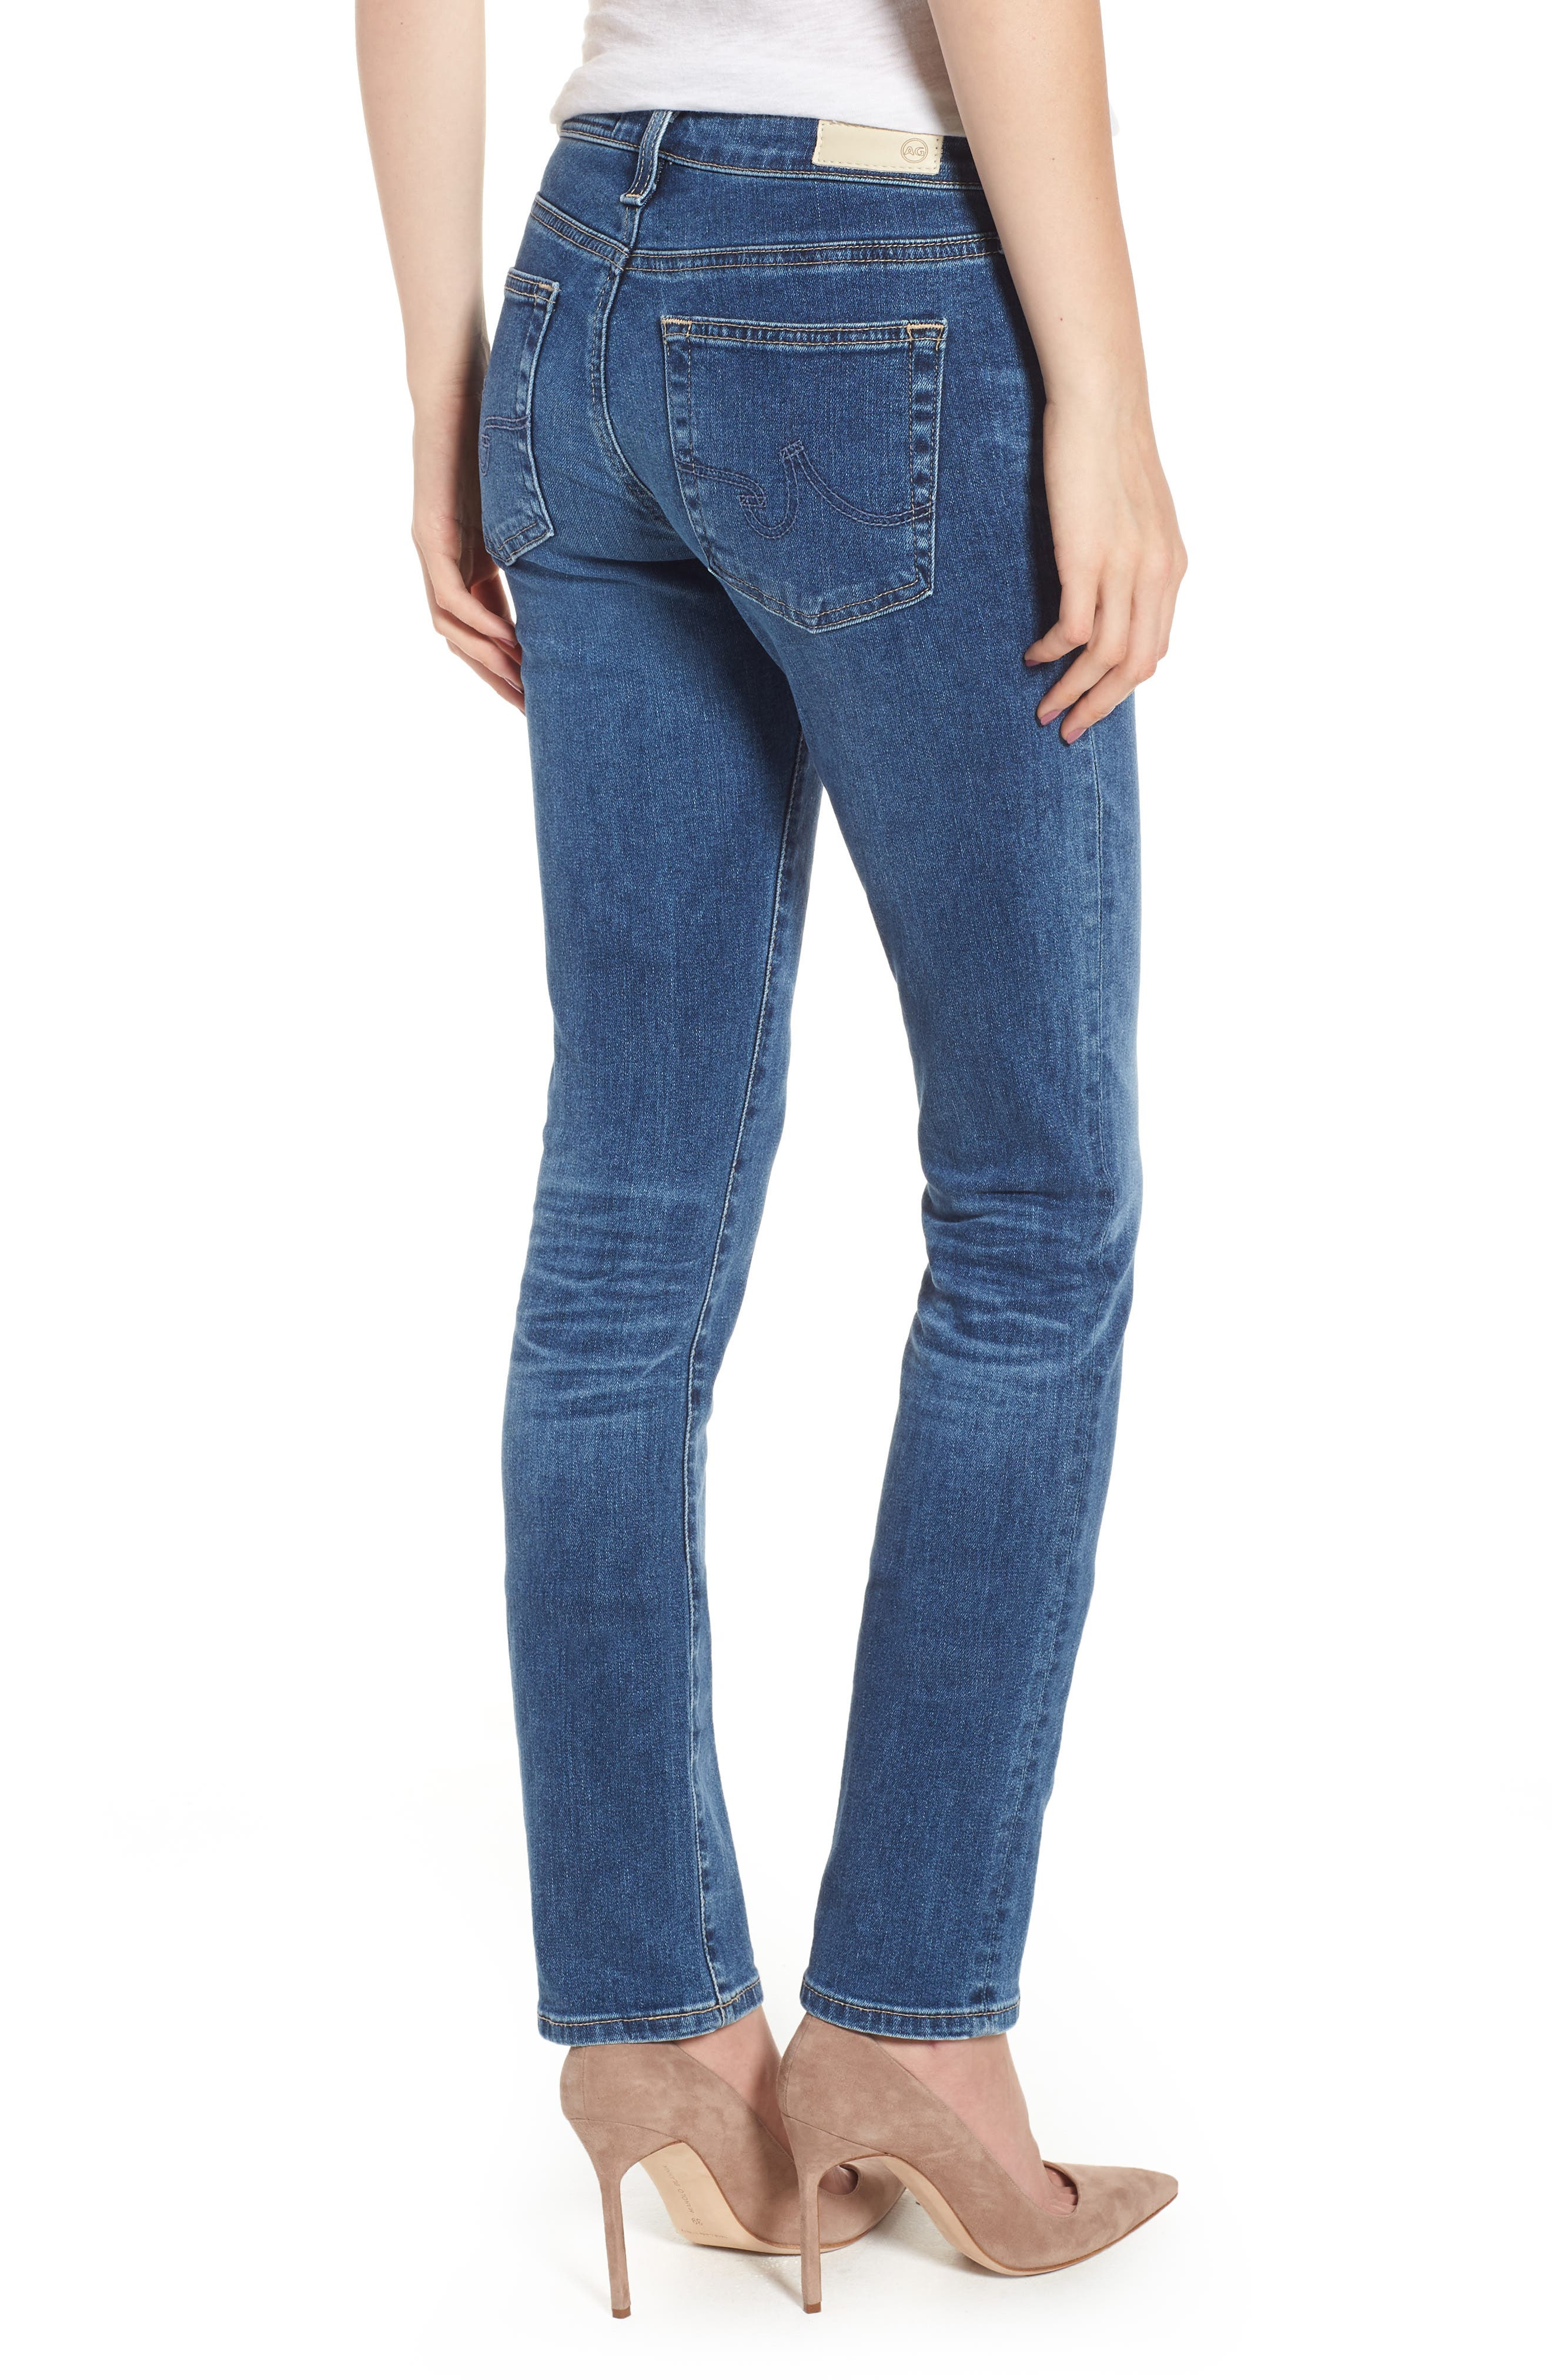 Harper Slim Straight Leg Jeans,                             Alternate thumbnail 2, color,                             10 YEARS CAMBRIA